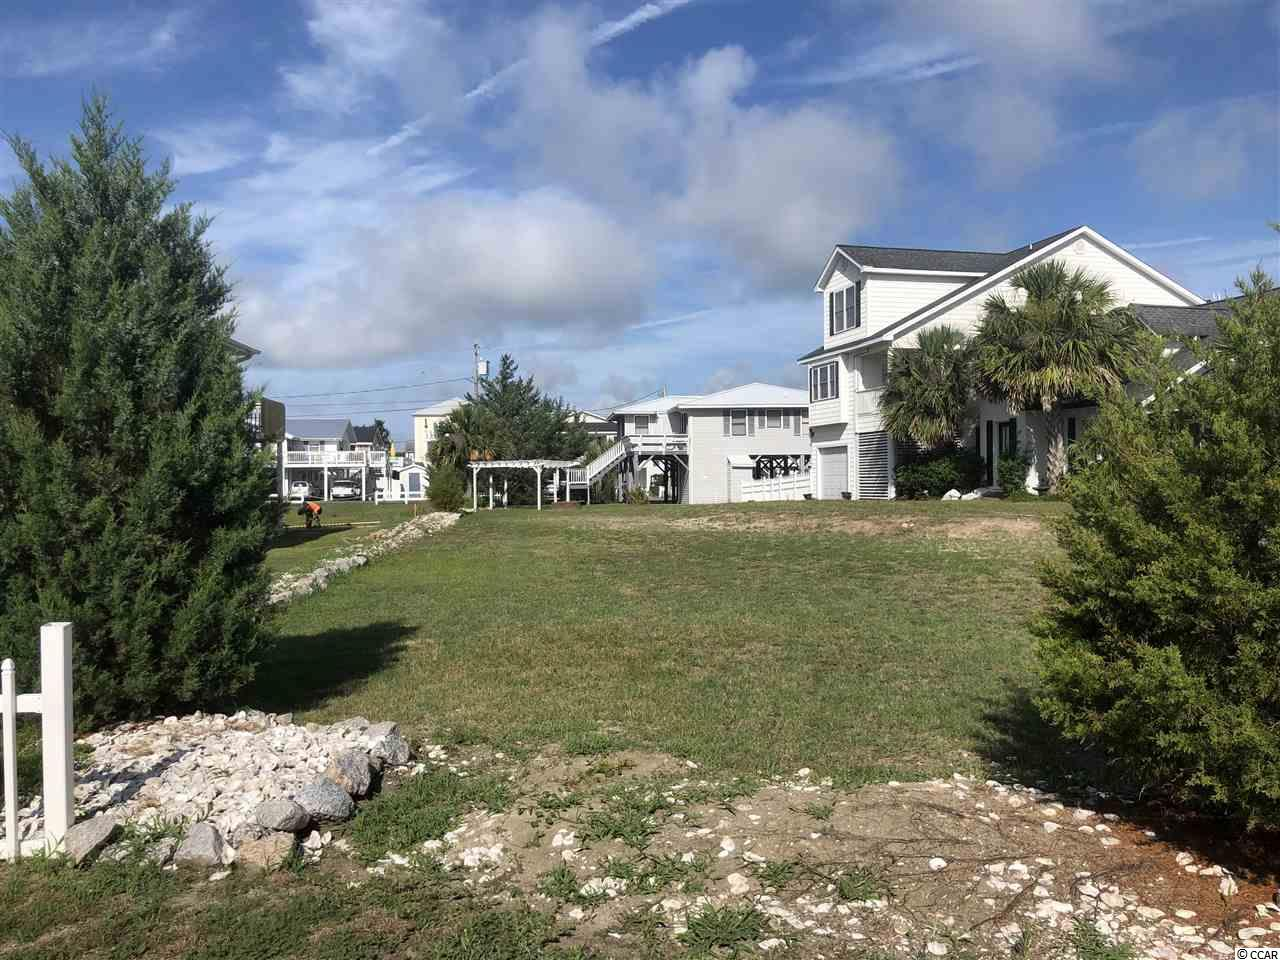 Beach style lot located just a few blocks off the ocean in the heart of Cherry Grove. Be sure to check out this homesite....located just a block from the marsh, 2.5 blocks from the oceanfront, 3 blocks from the Cherry Grove Pier and just a short distance to Boulineaus, shopping, restaurants and much more.